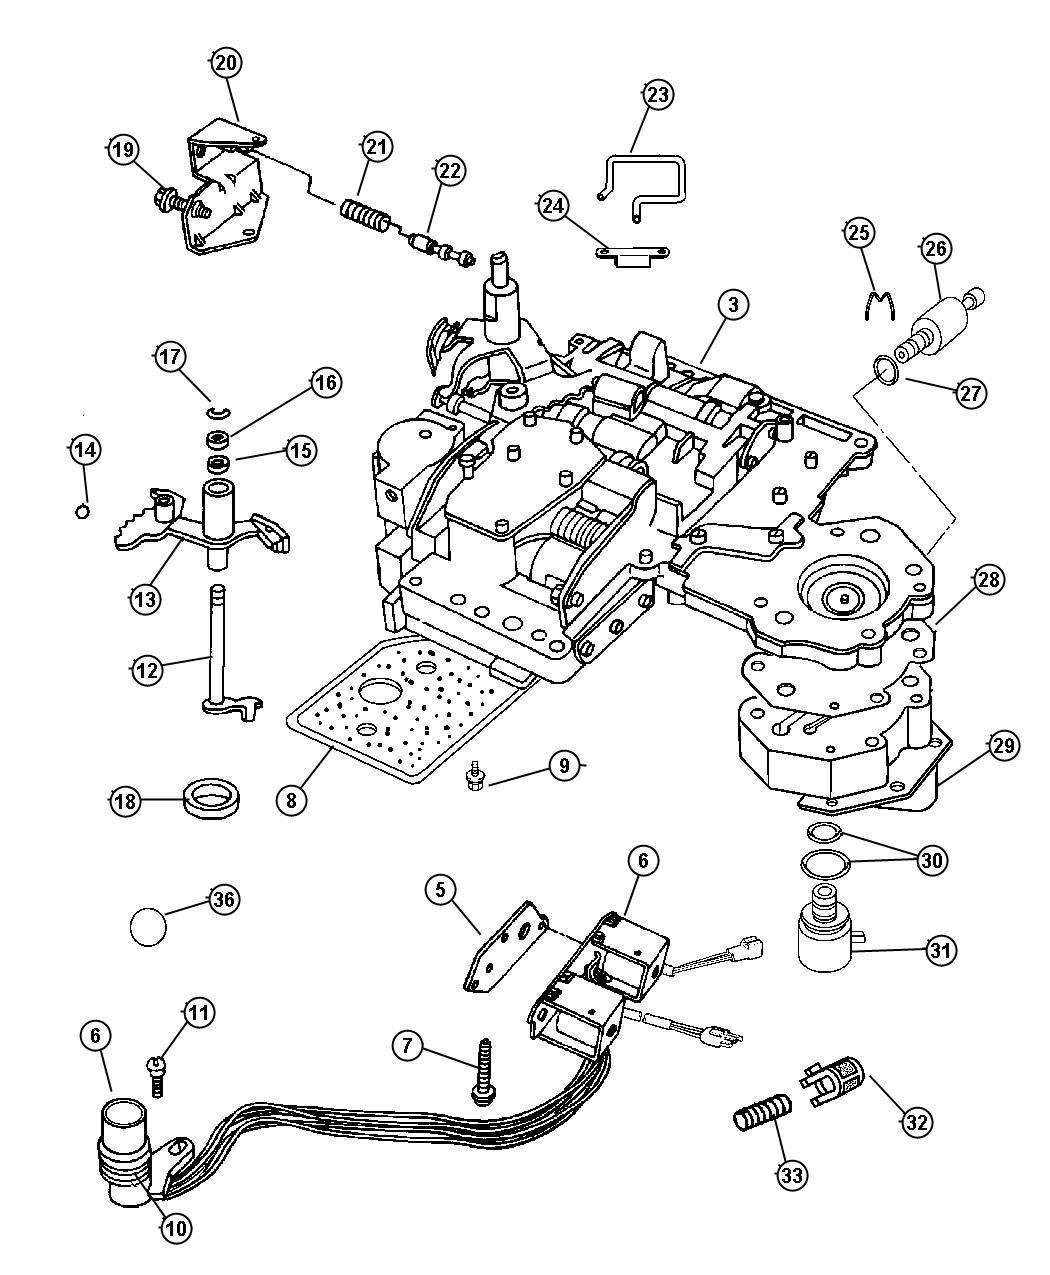 2001 Dodge Durango Wiring Diagram Further 2004 Dodge Durango 4 7